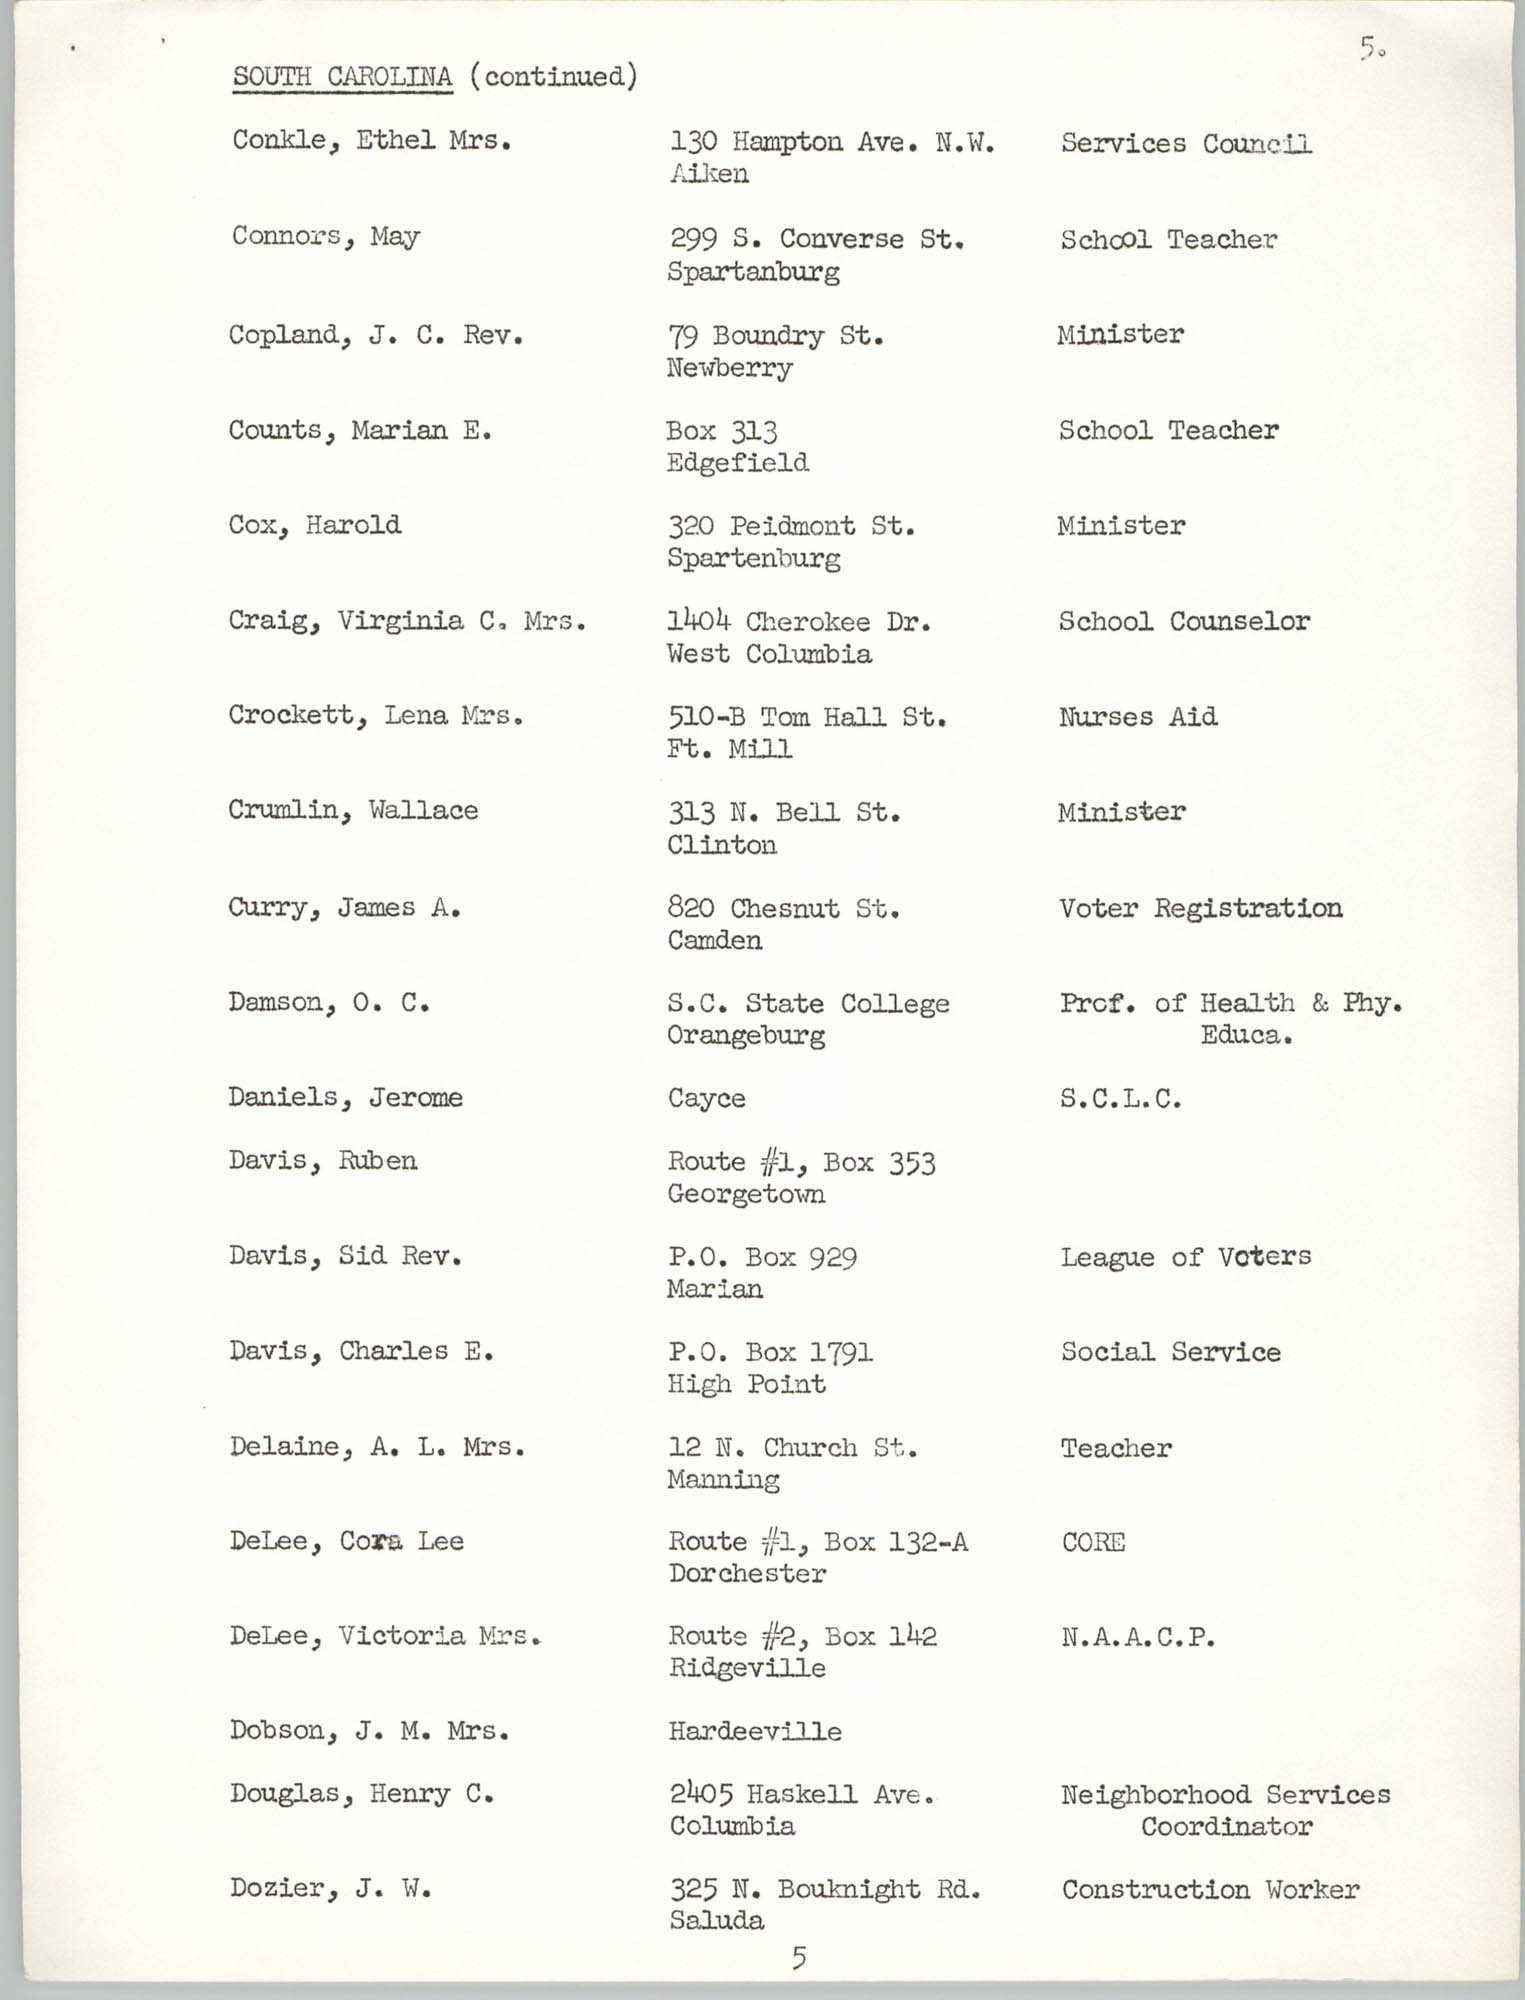 Registration, U.S. Commission on Civil Rights, Statewide Education Desegregation Conference, Page 5